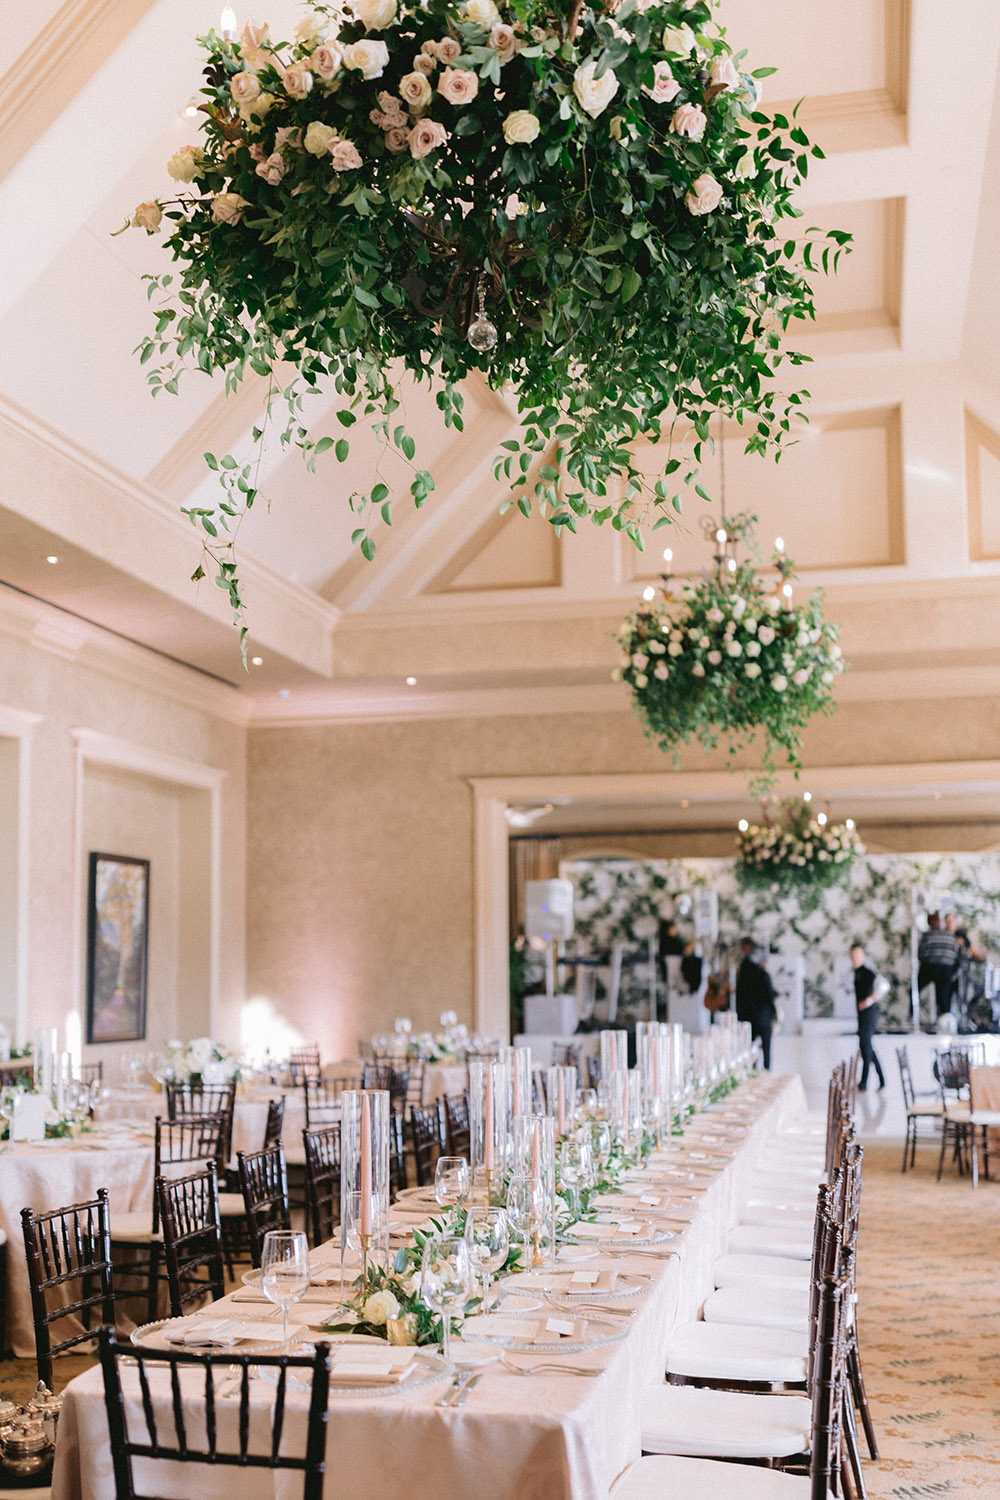 Elegant and classic reception decor and set up at the royal oaks country club.